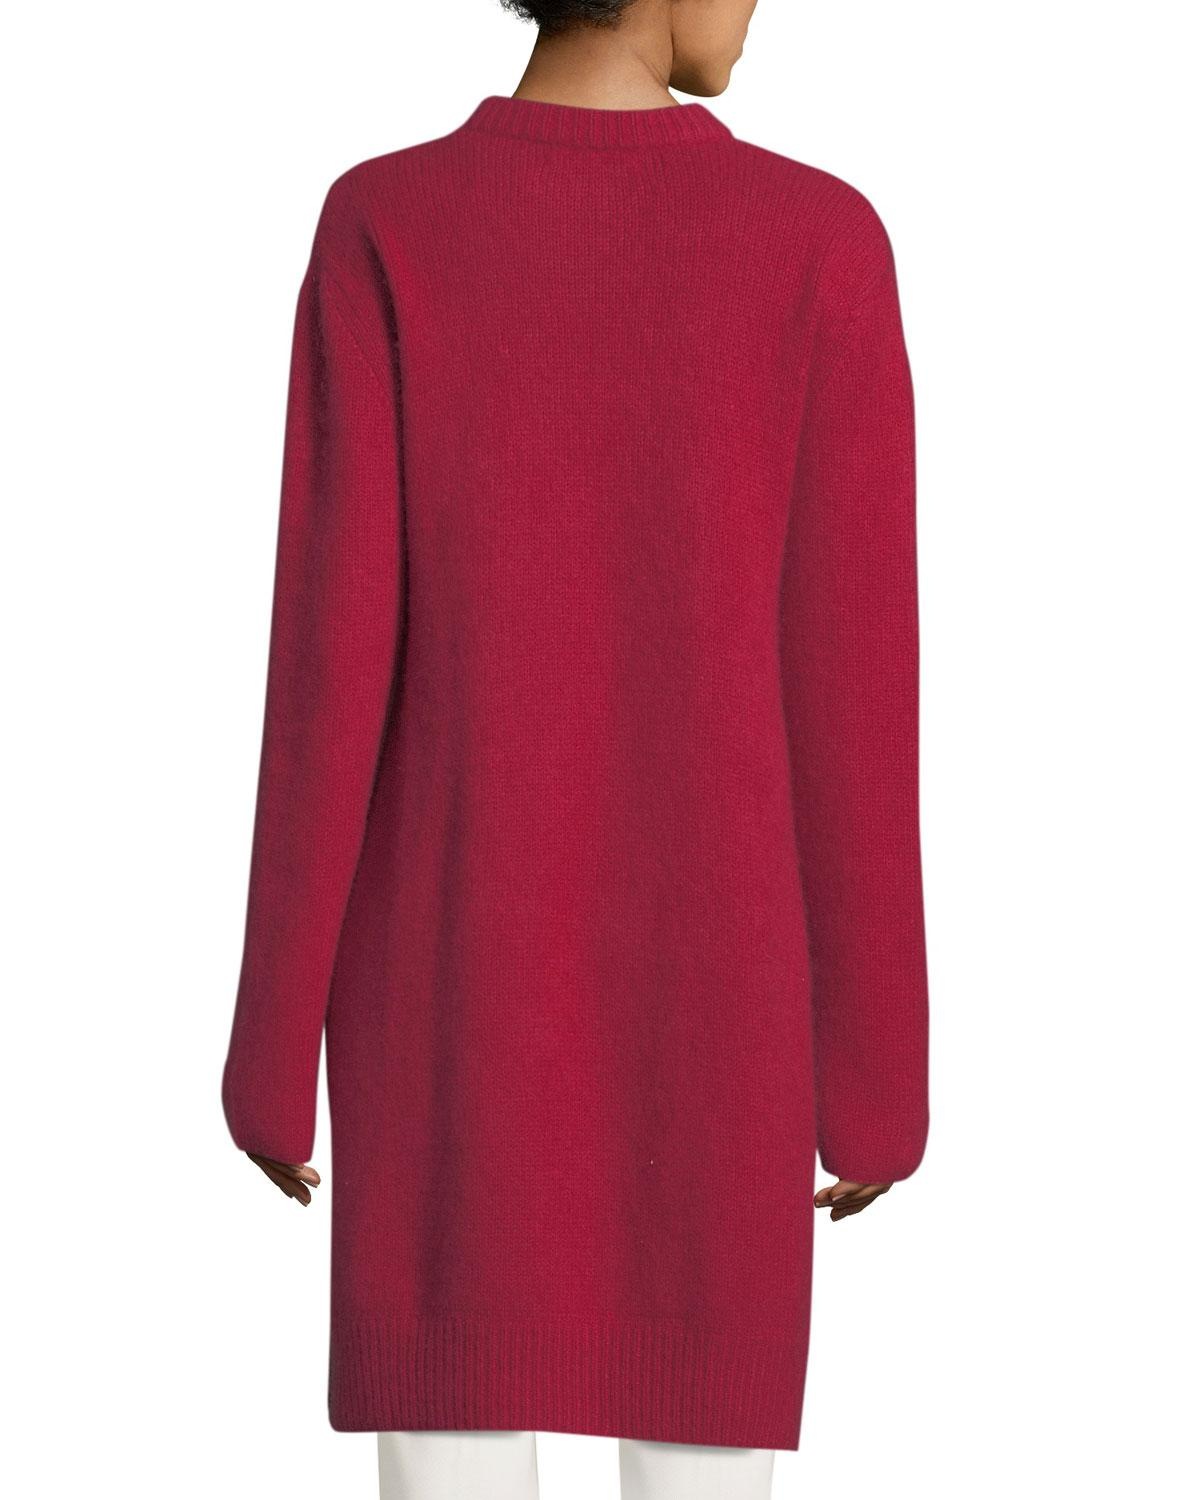 Ryan roche Long Side-slit Tunic Sweater in Red | Lyst